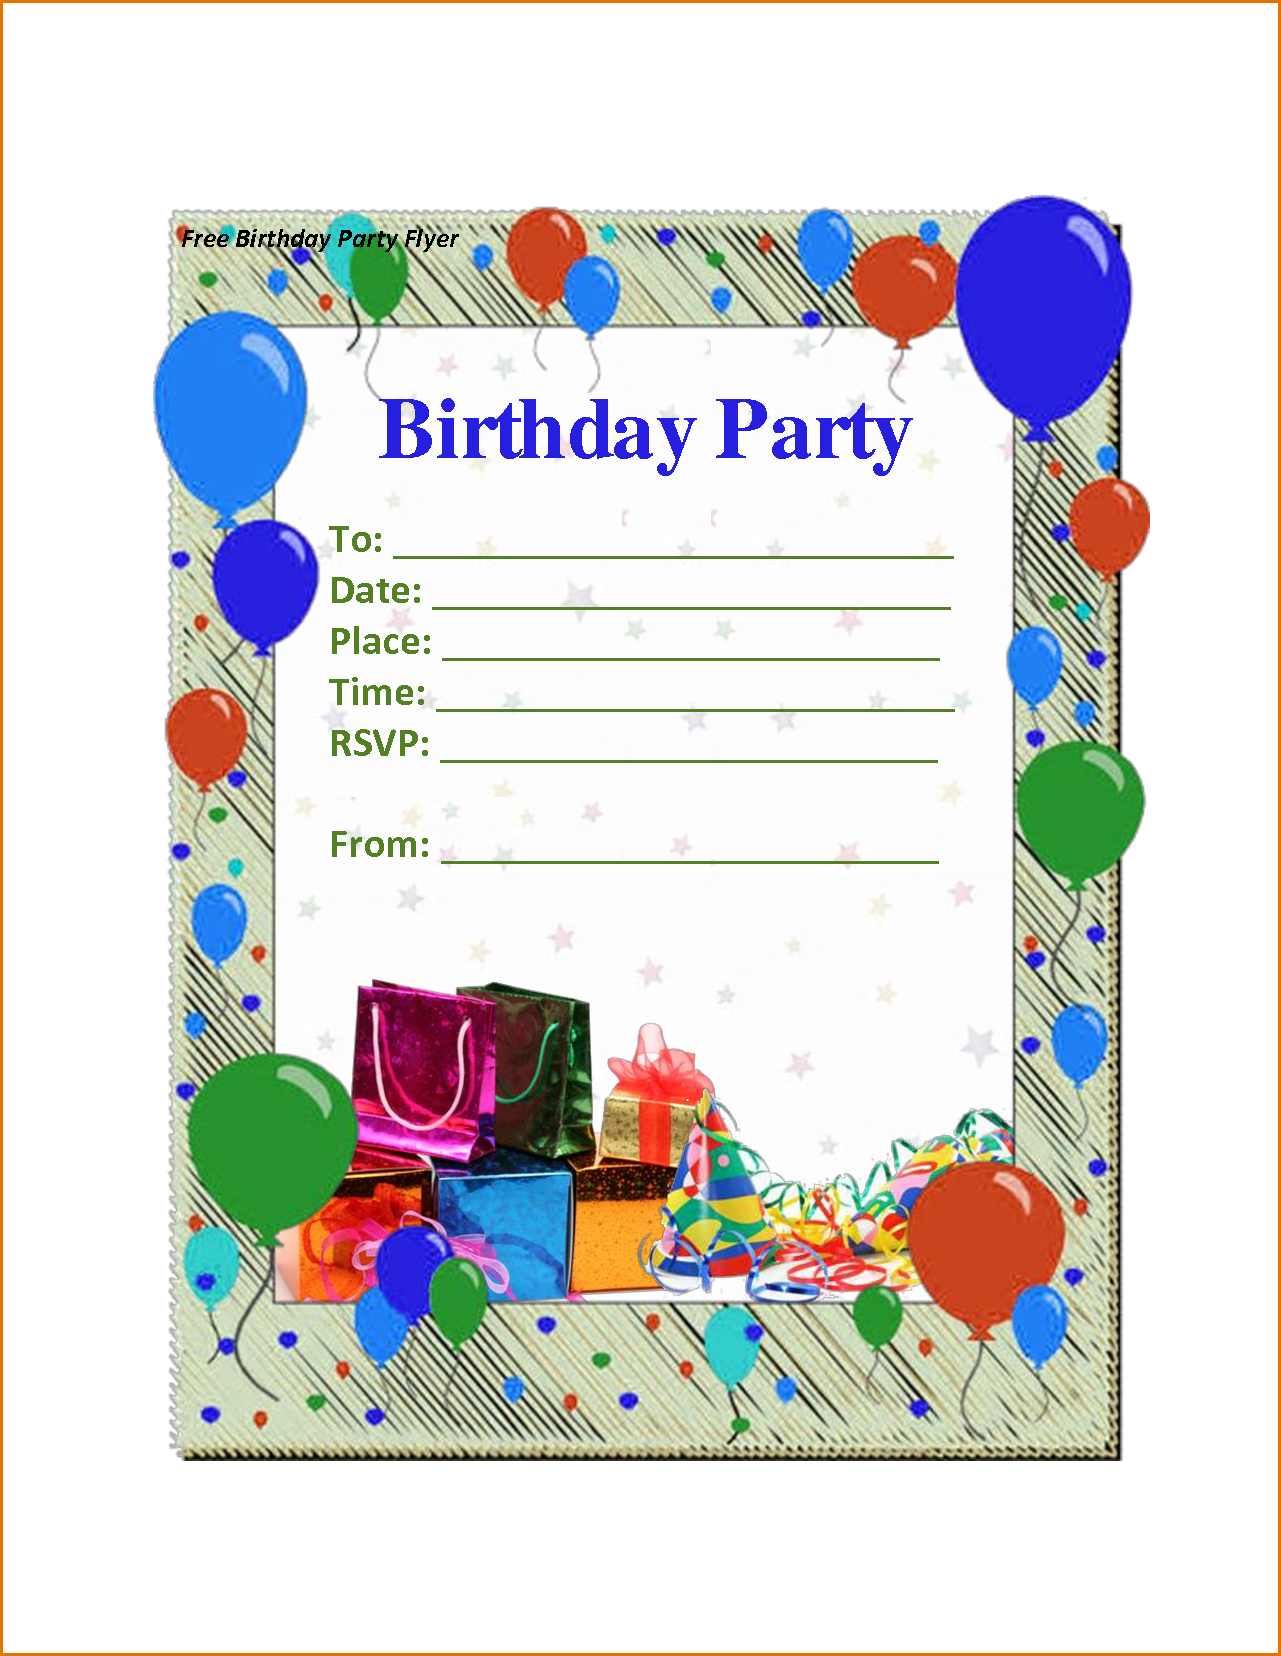 19 Standard Word Birthday Invitation Template in Photoshop for Word Birthday Invitation Template